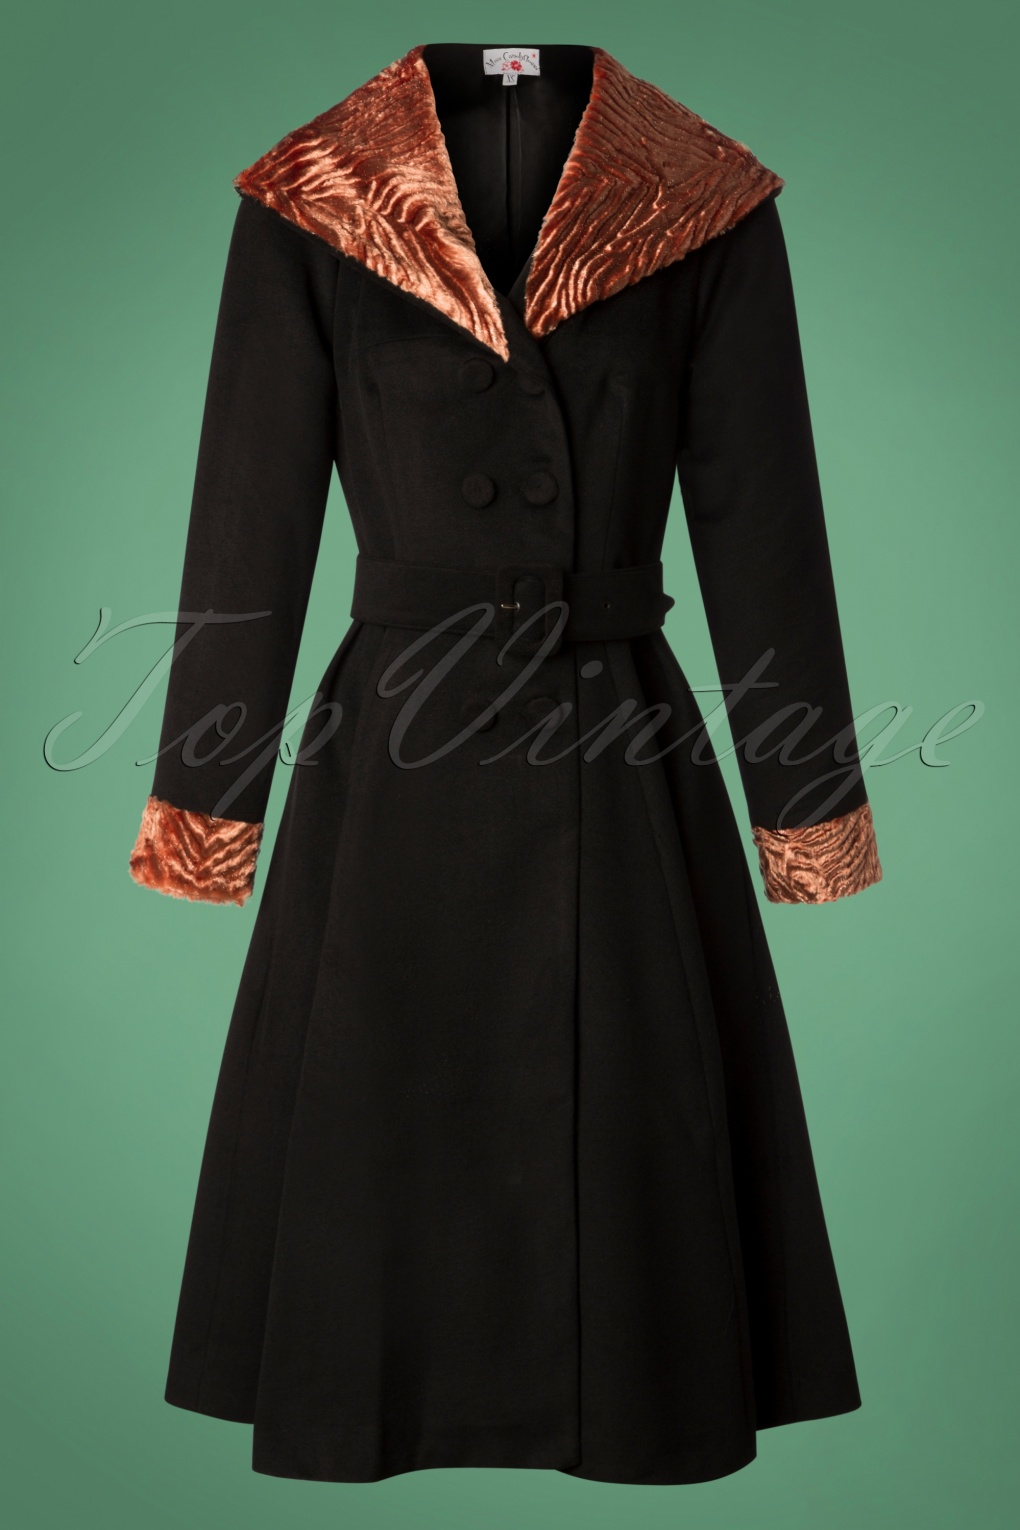 1950s Jackets, Coats, Bolero | Swing, Pin Up, Rockabilly 50s Amour Fur Swing Coat in Black and Rose Pink £147.69 AT vintagedancer.com